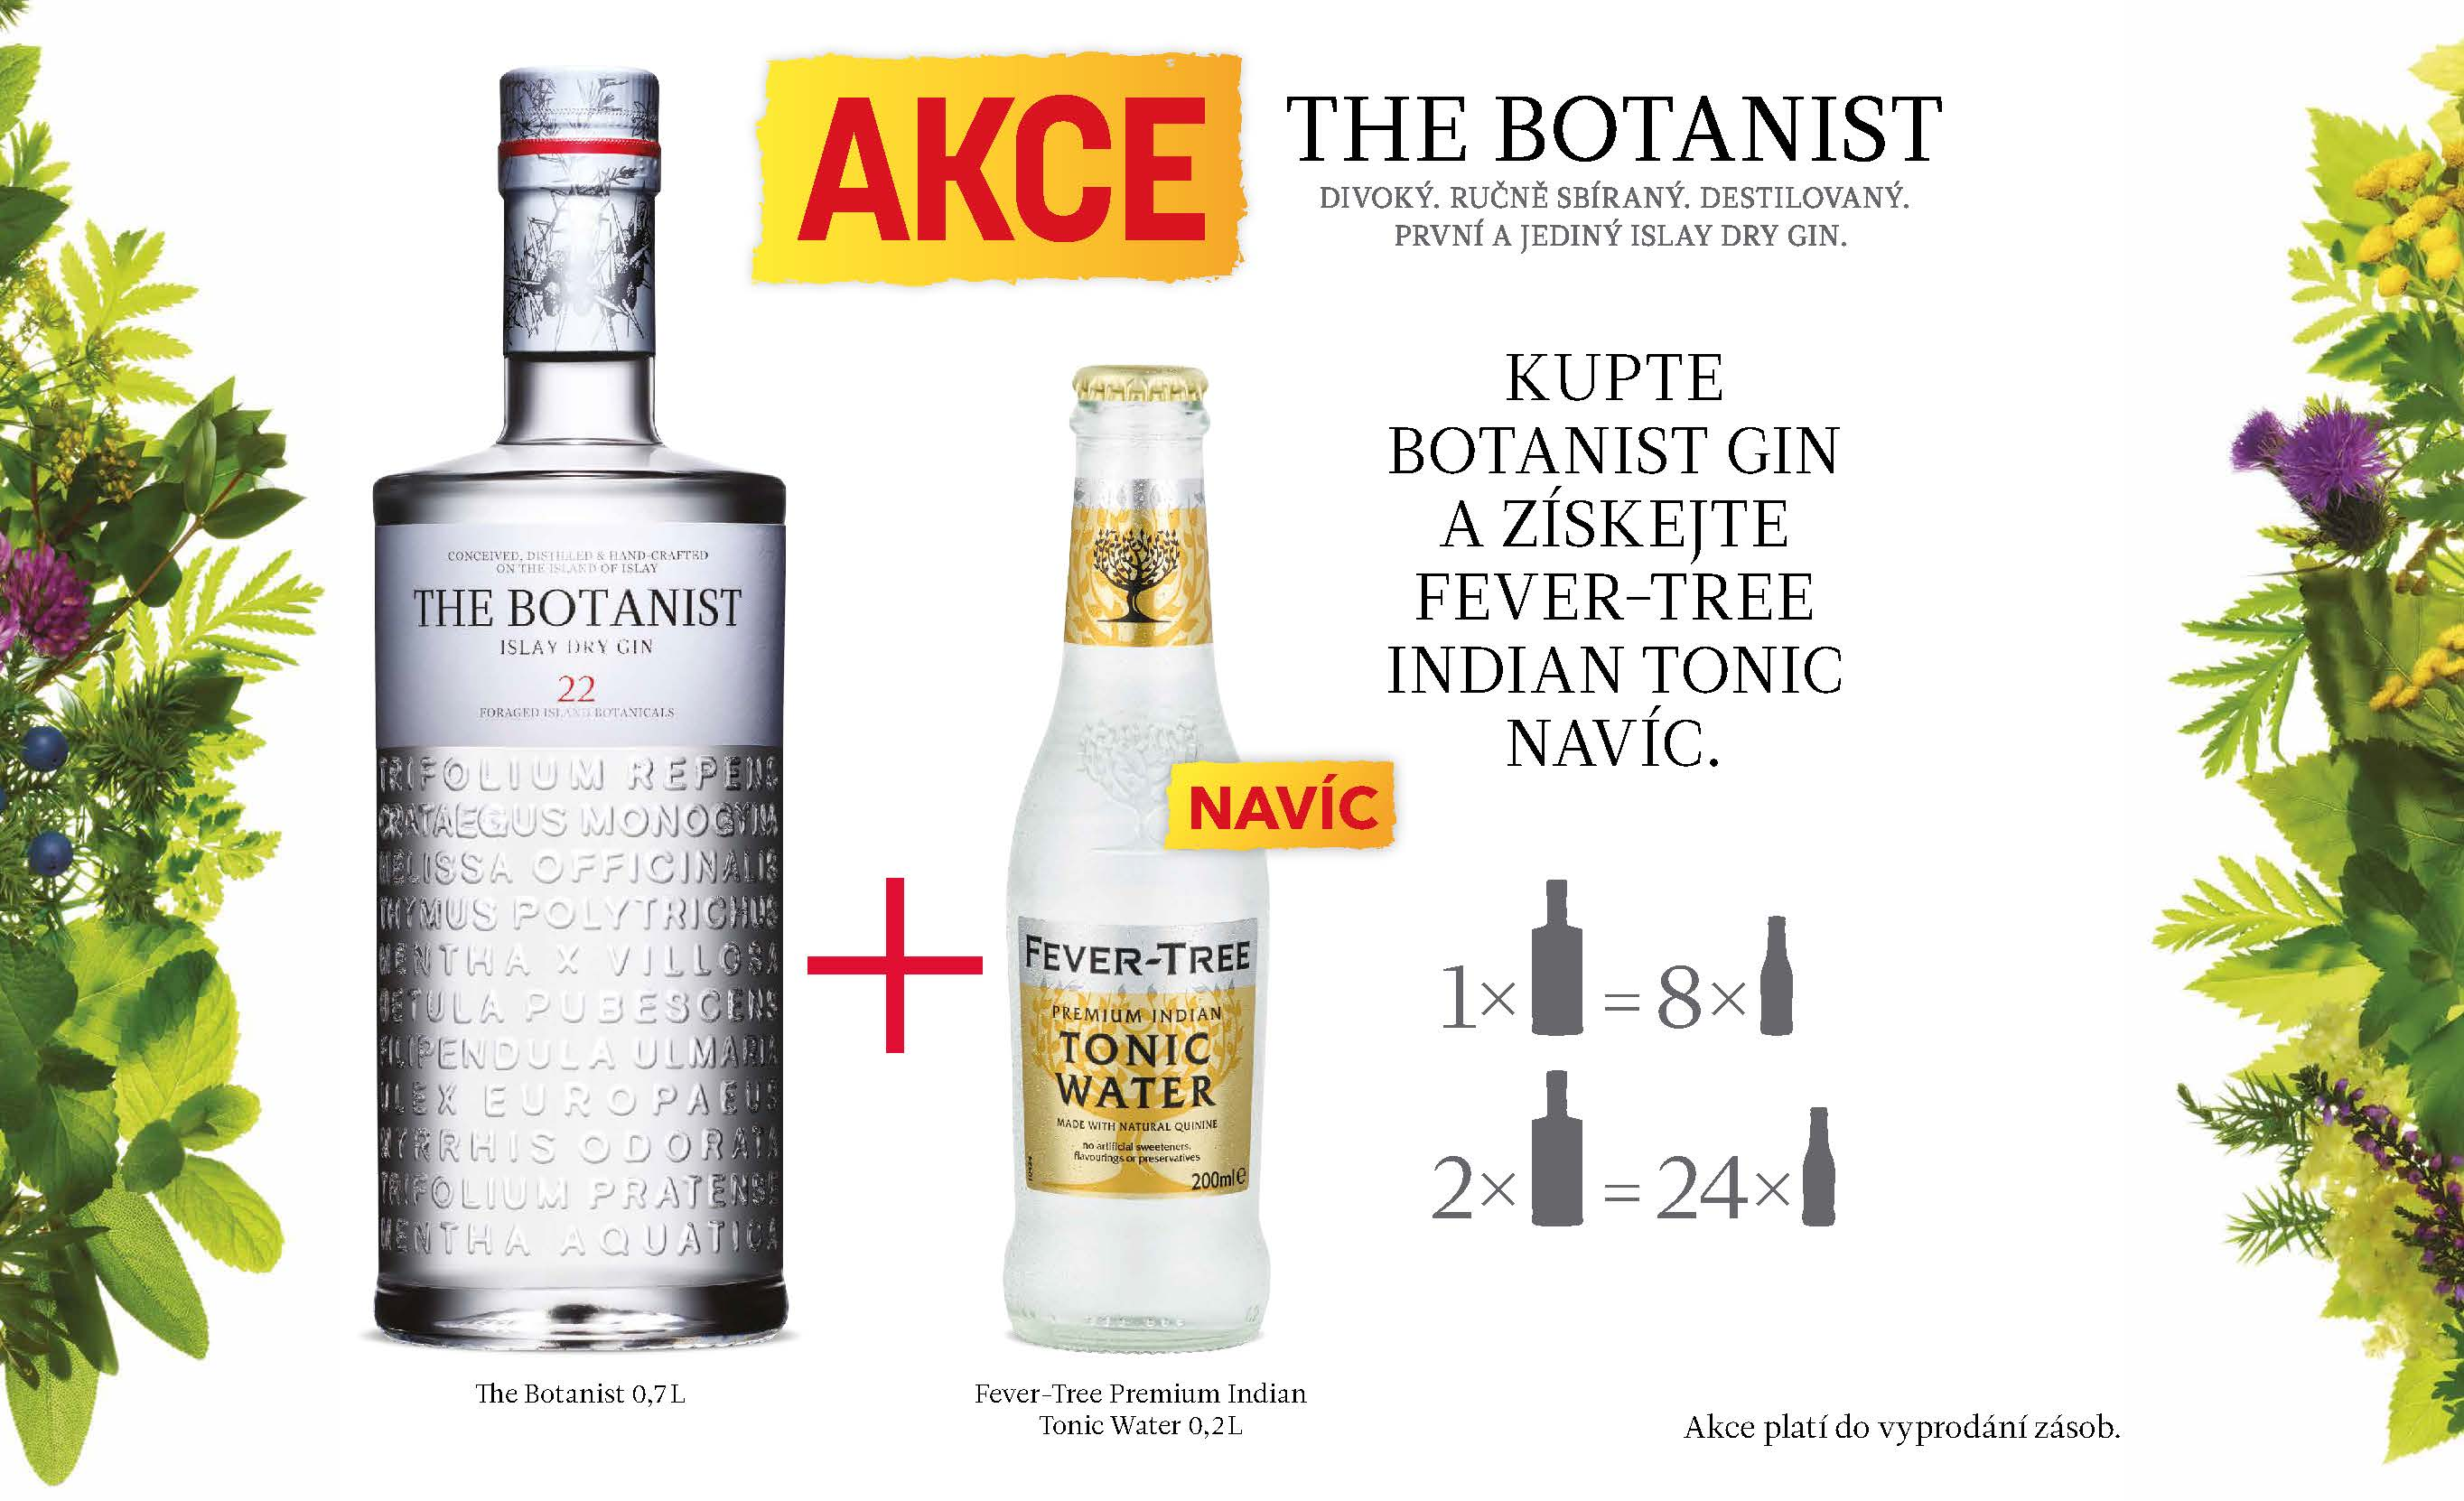 The Botanist + Fever Tree Tonic Zdarma